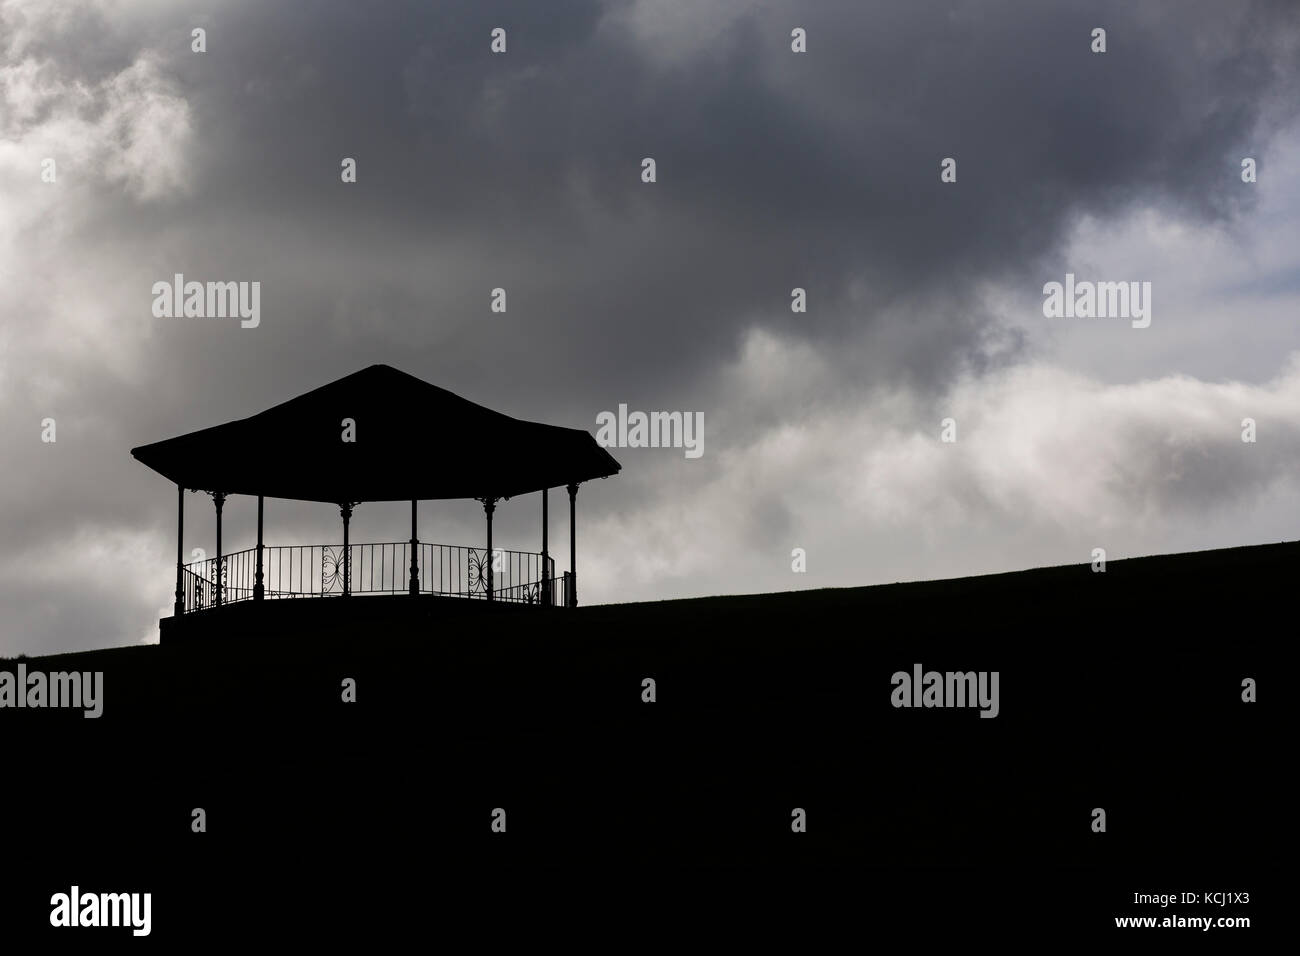 Silhouette of bandstand at top of hill against dark, moody clouds in sky - Stock Image